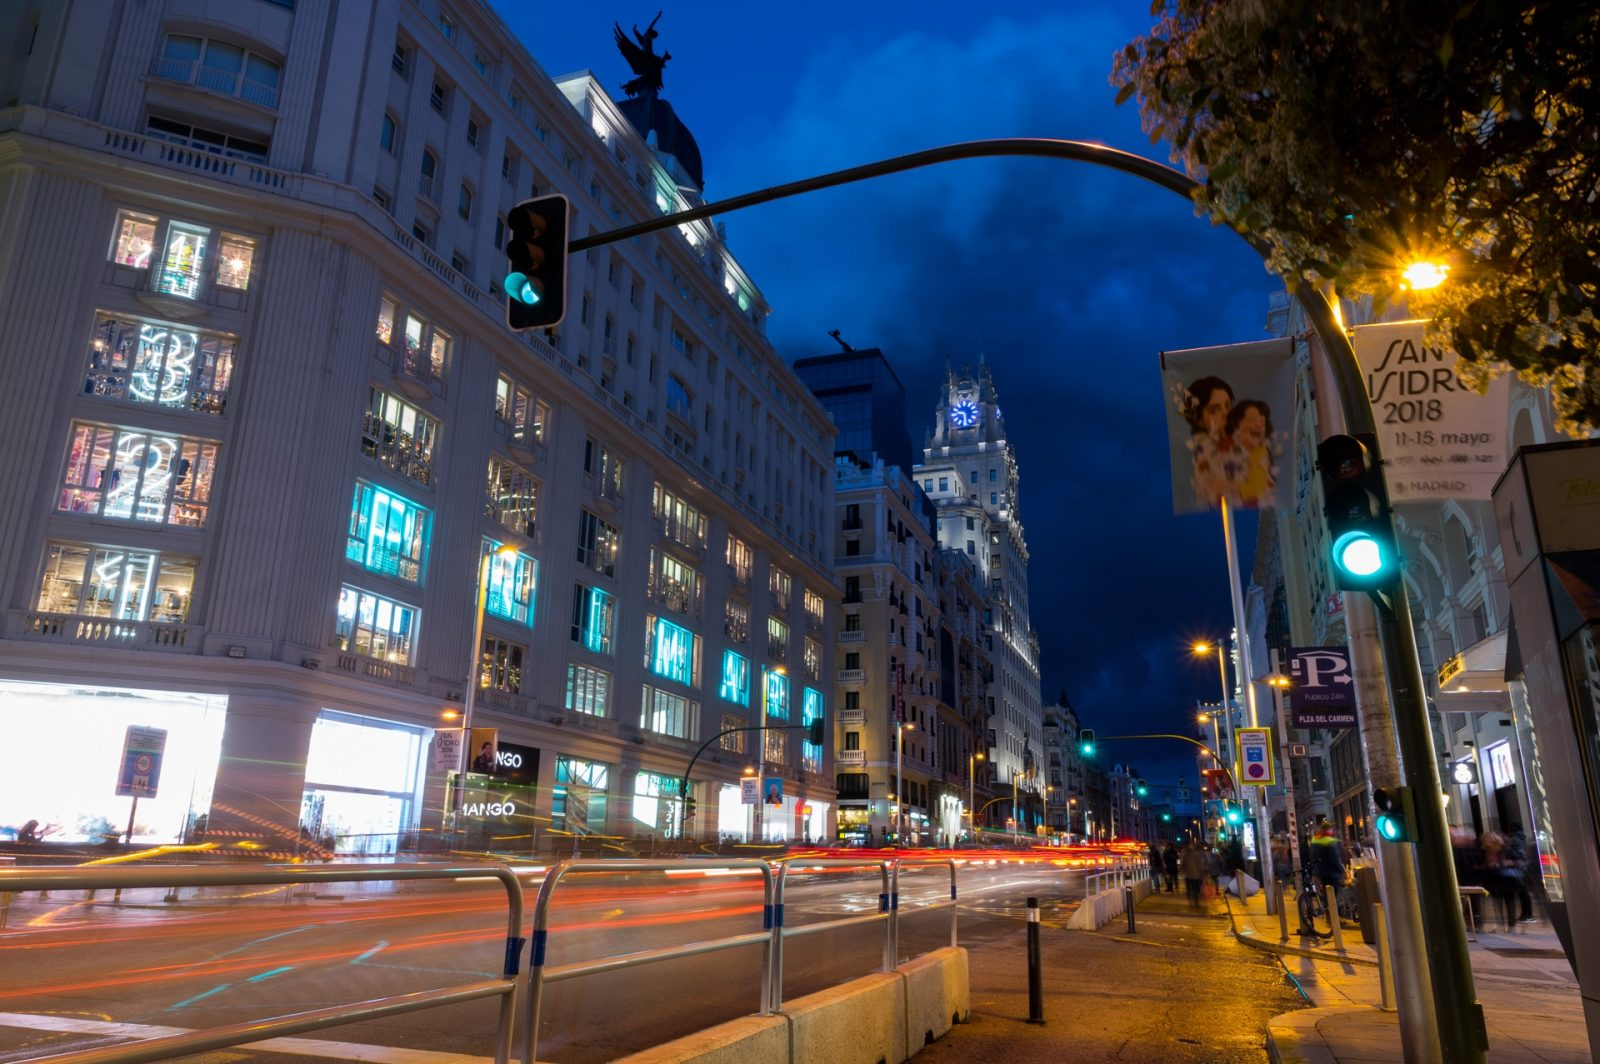 things to do in madrid gran via